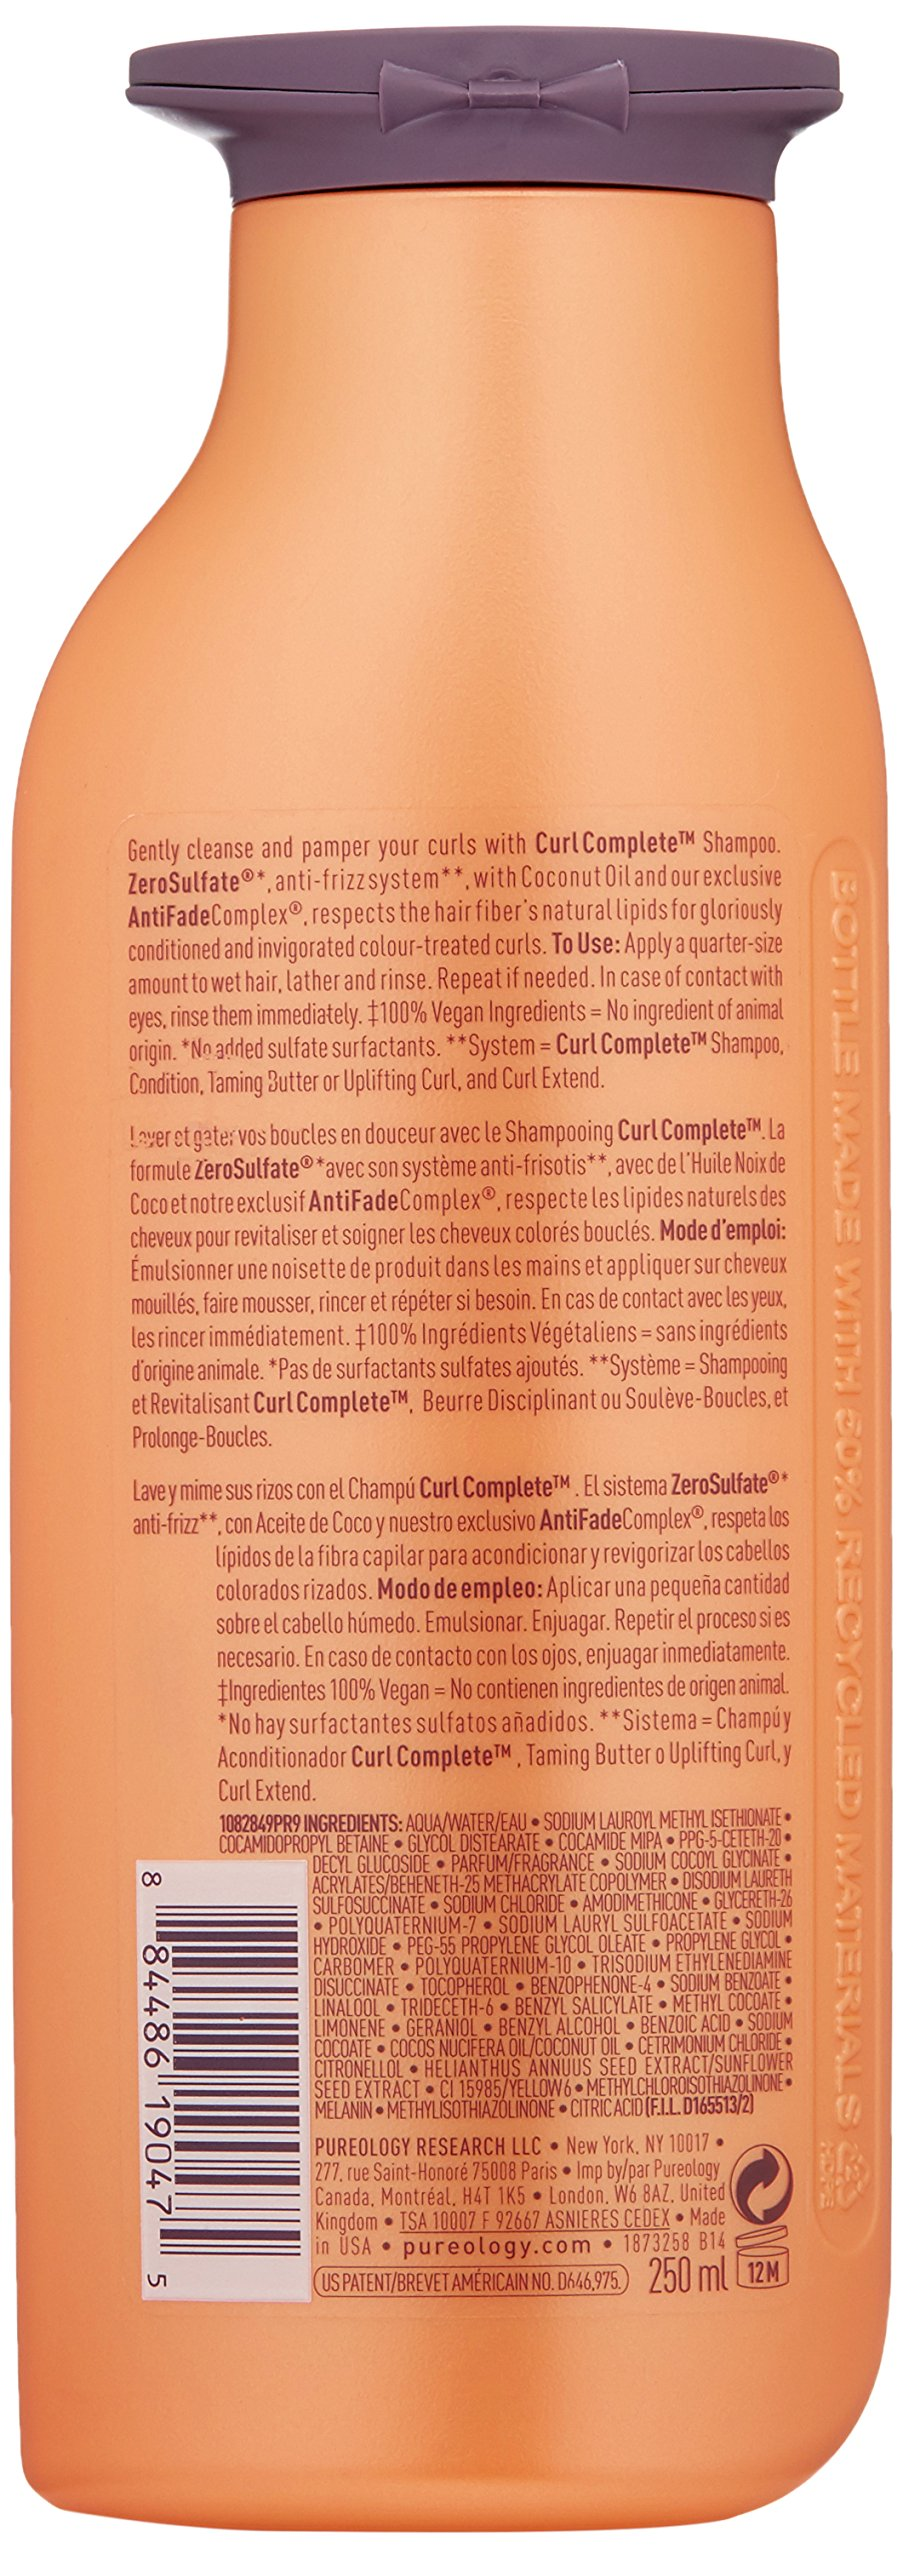 Pureology Curl Complete Shampoo, 8.5 Fl Oz by Pureology (Image #2)